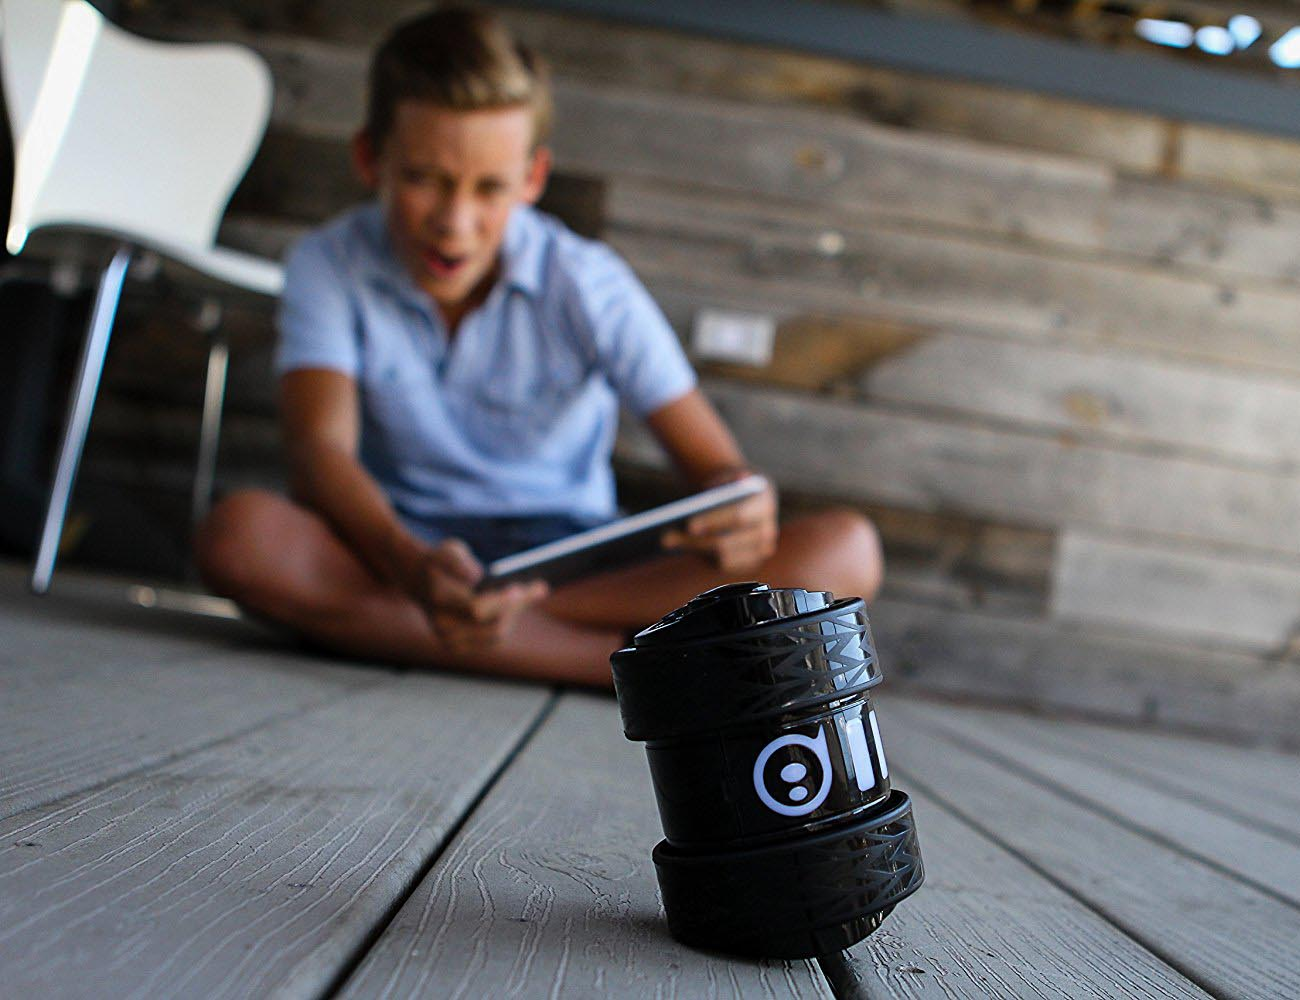 Darkside+Ollie+By+Sphero+%26%238211%3B+Power+Packed+Robot+For+App+Enabled+Racing